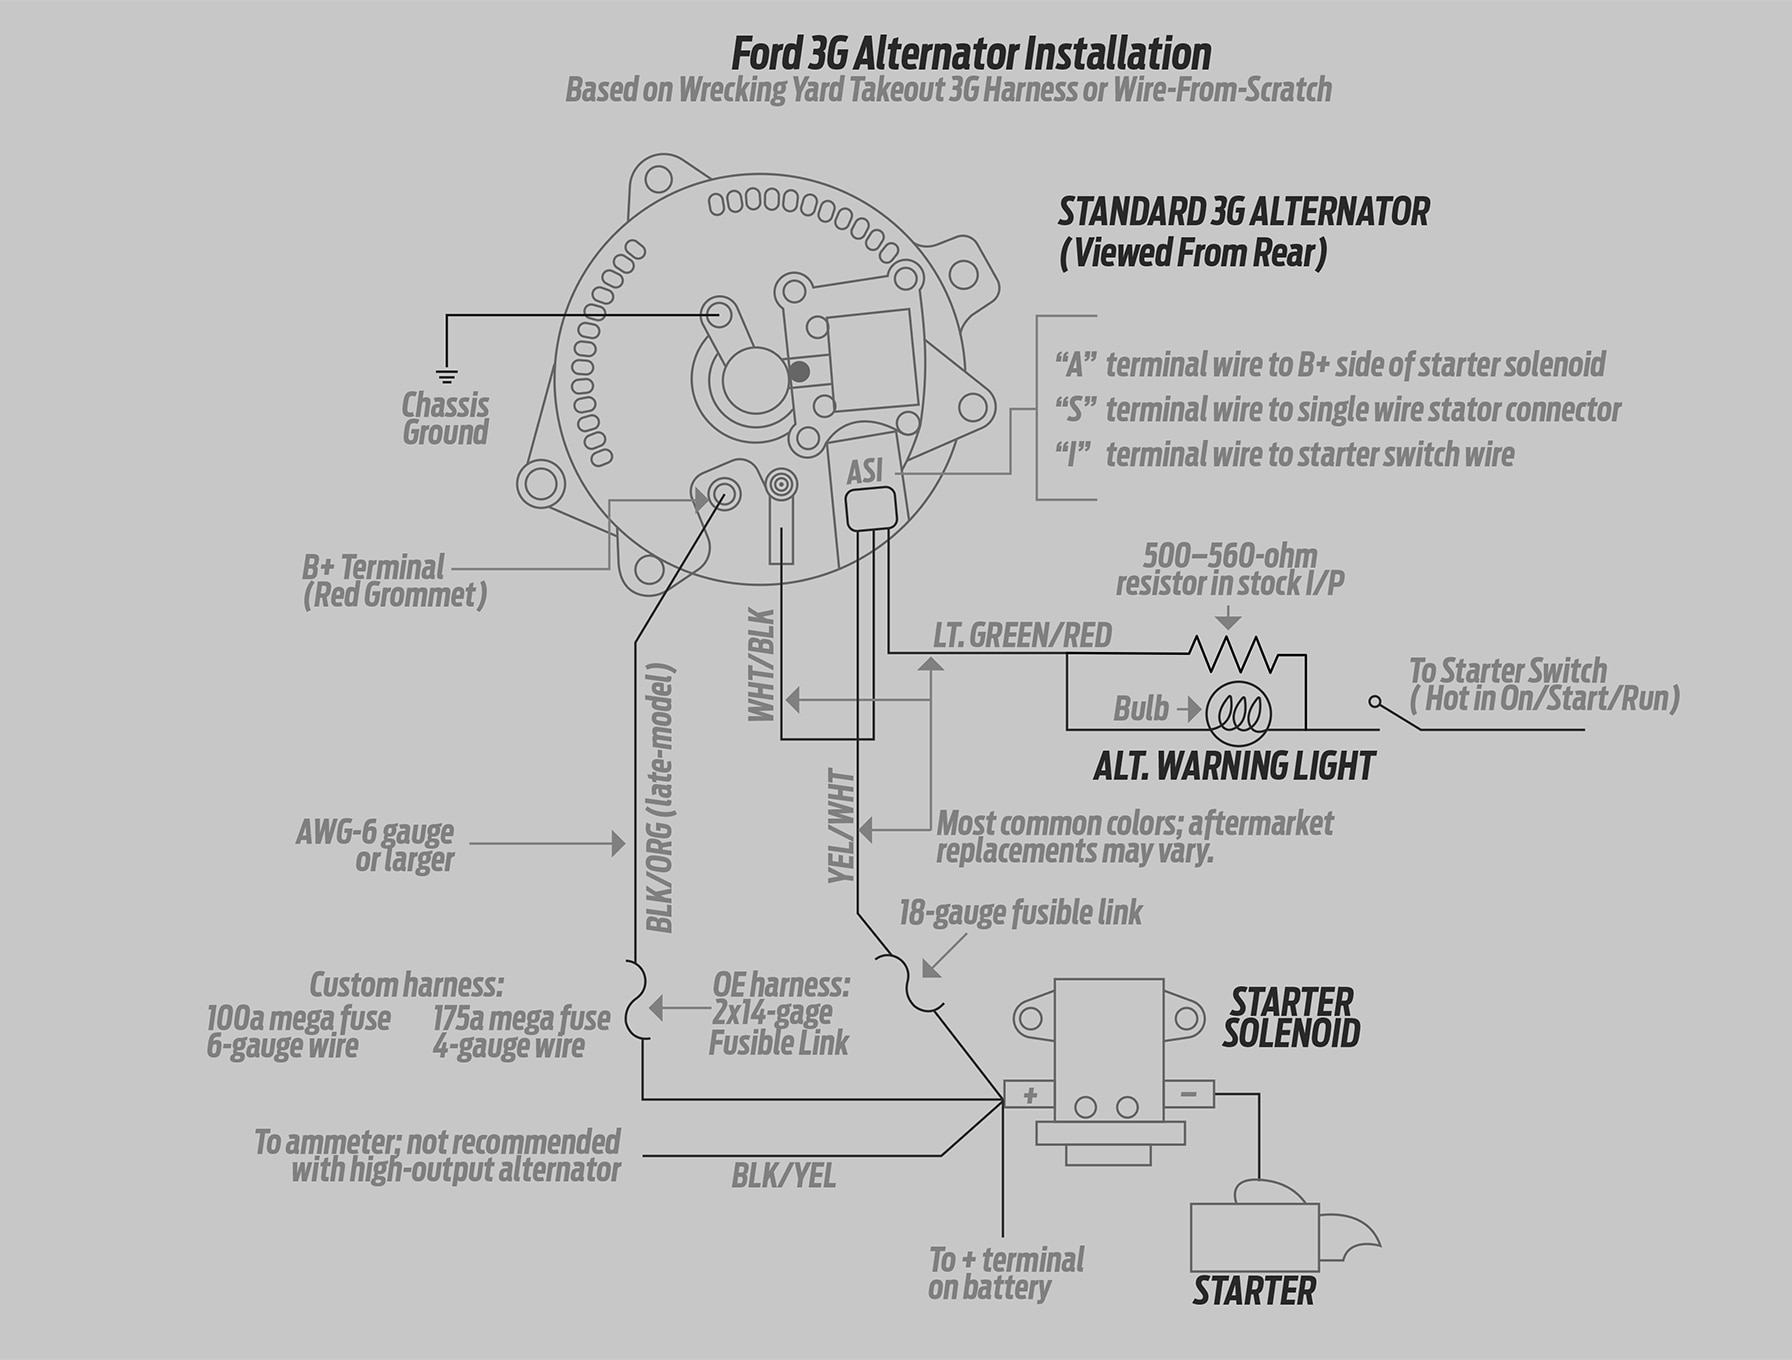 small resolution of ford 3g alternator wiring harness wiring diagram experthow to install a high output ford 3g alternator